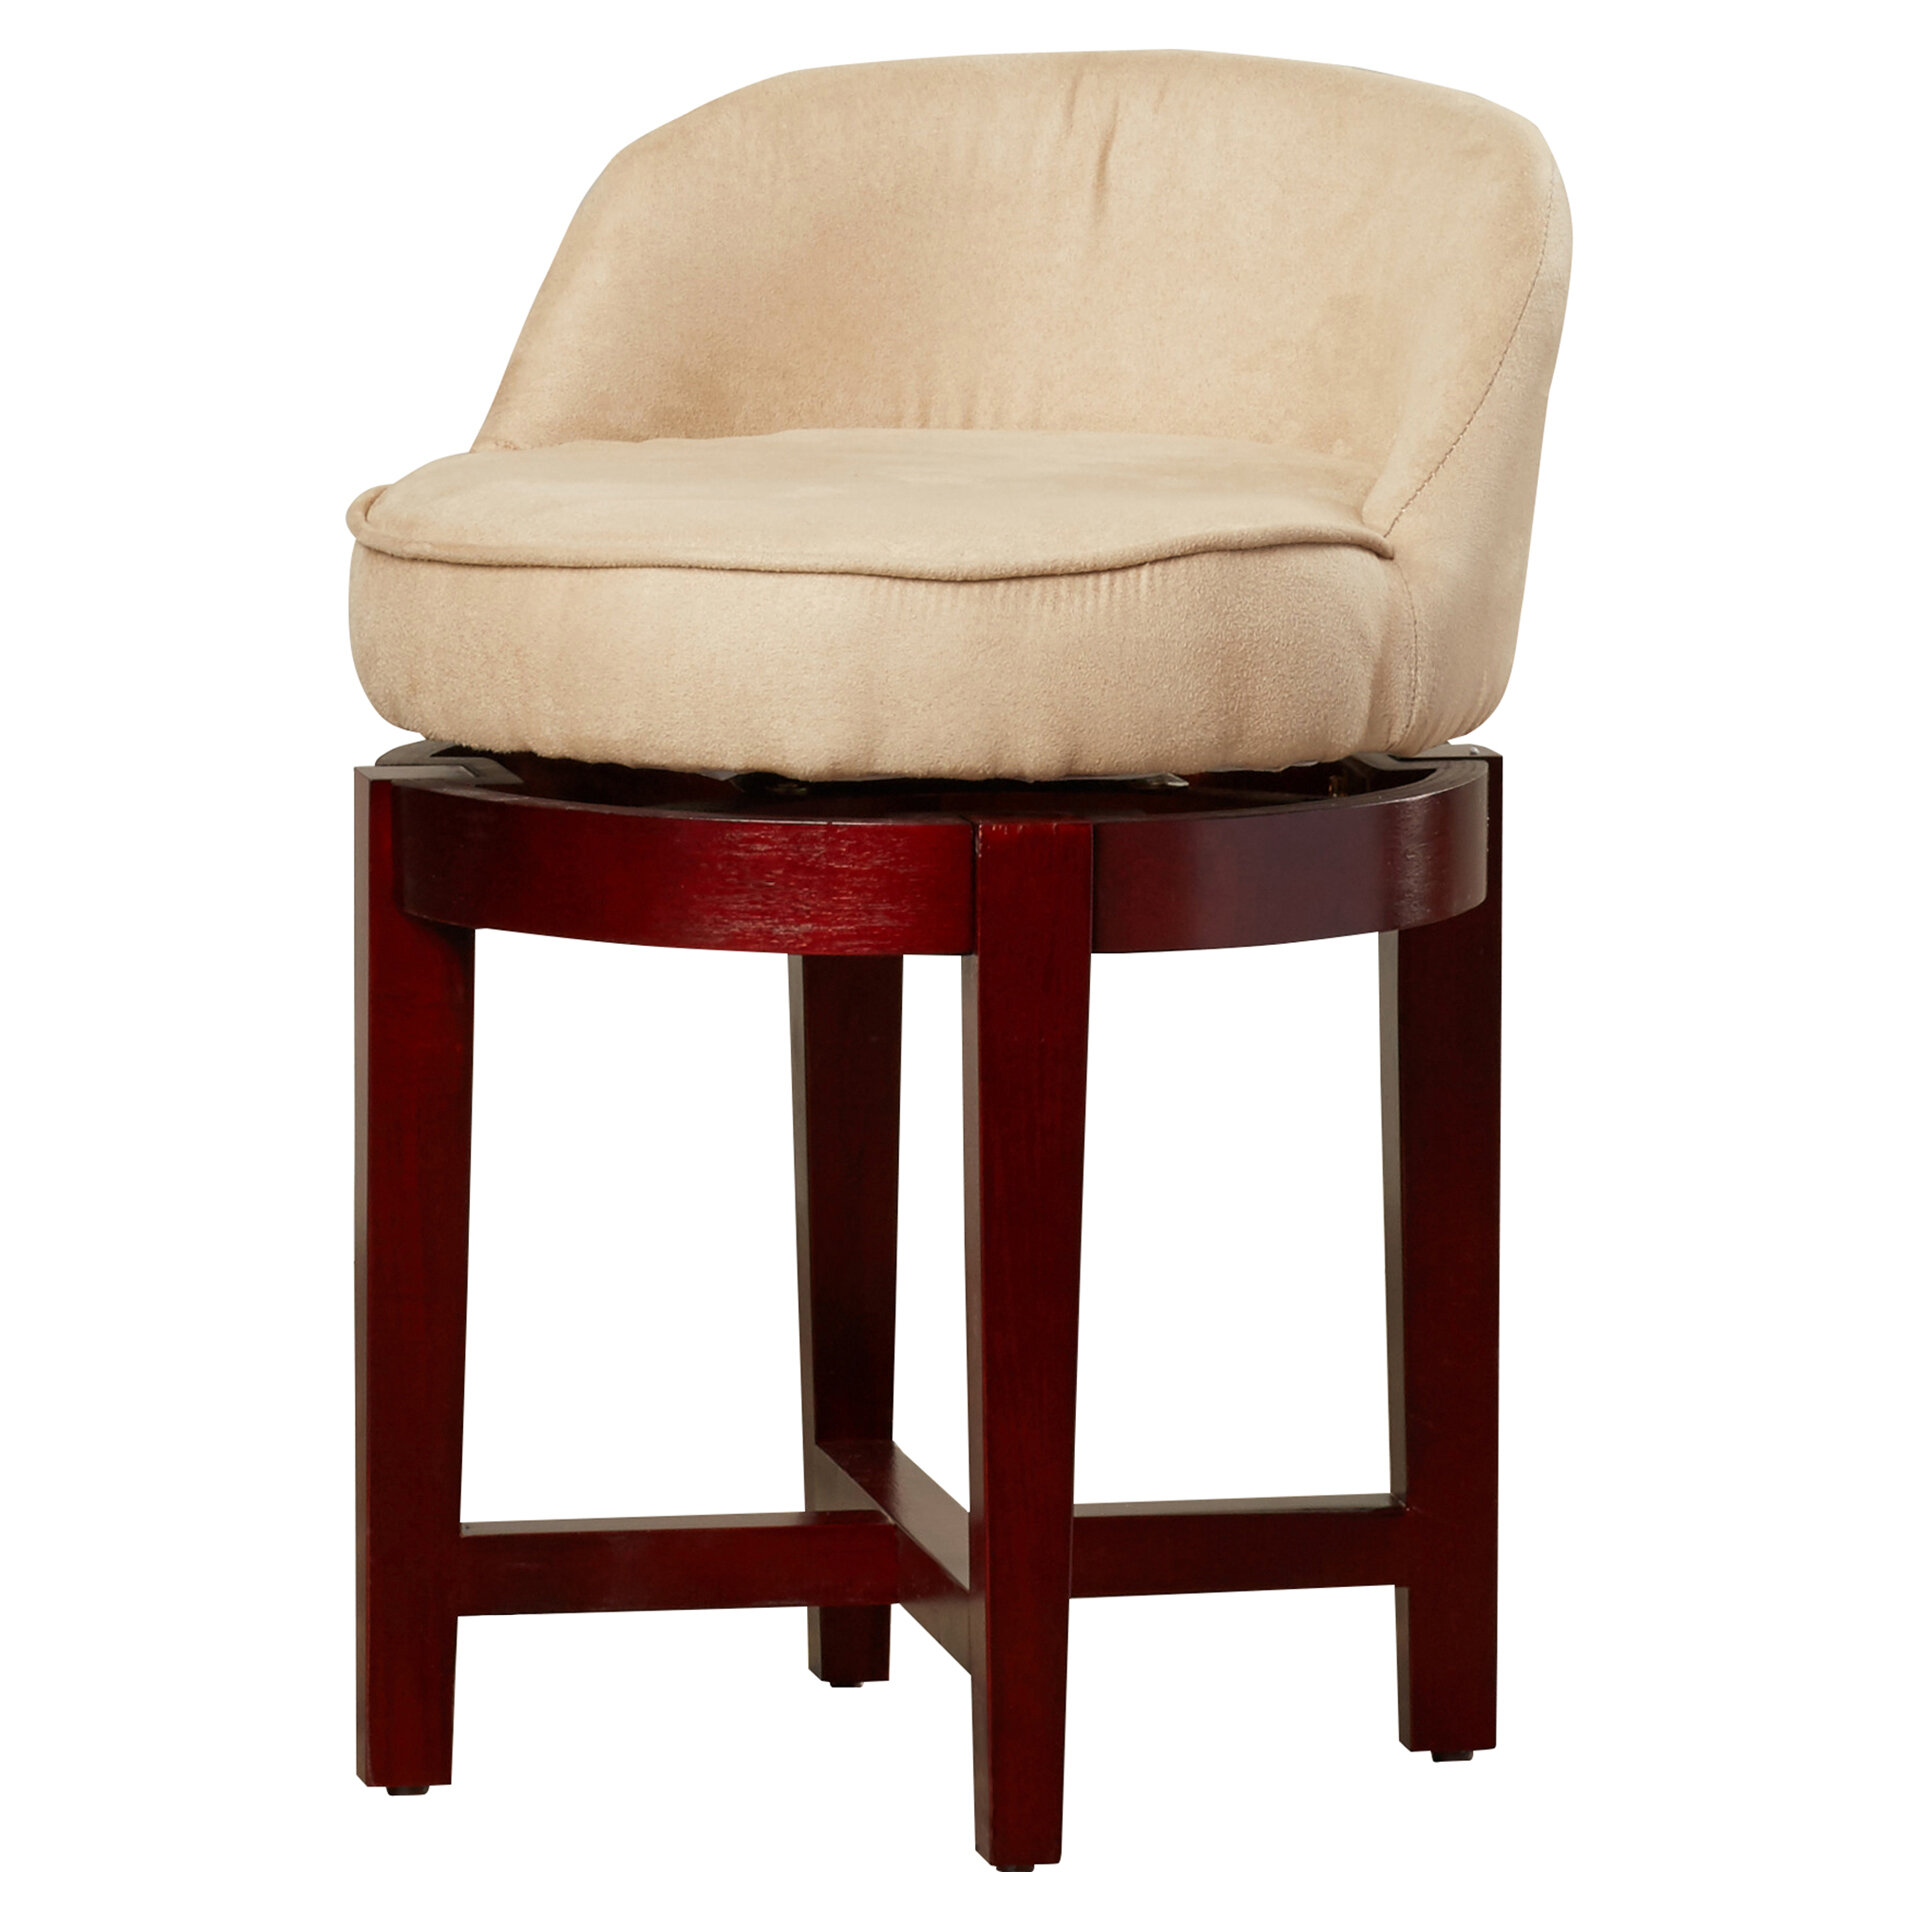 Awesome Stults Swivel Solid Wood Vanity Stool Andrewgaddart Wooden Chair Designs For Living Room Andrewgaddartcom